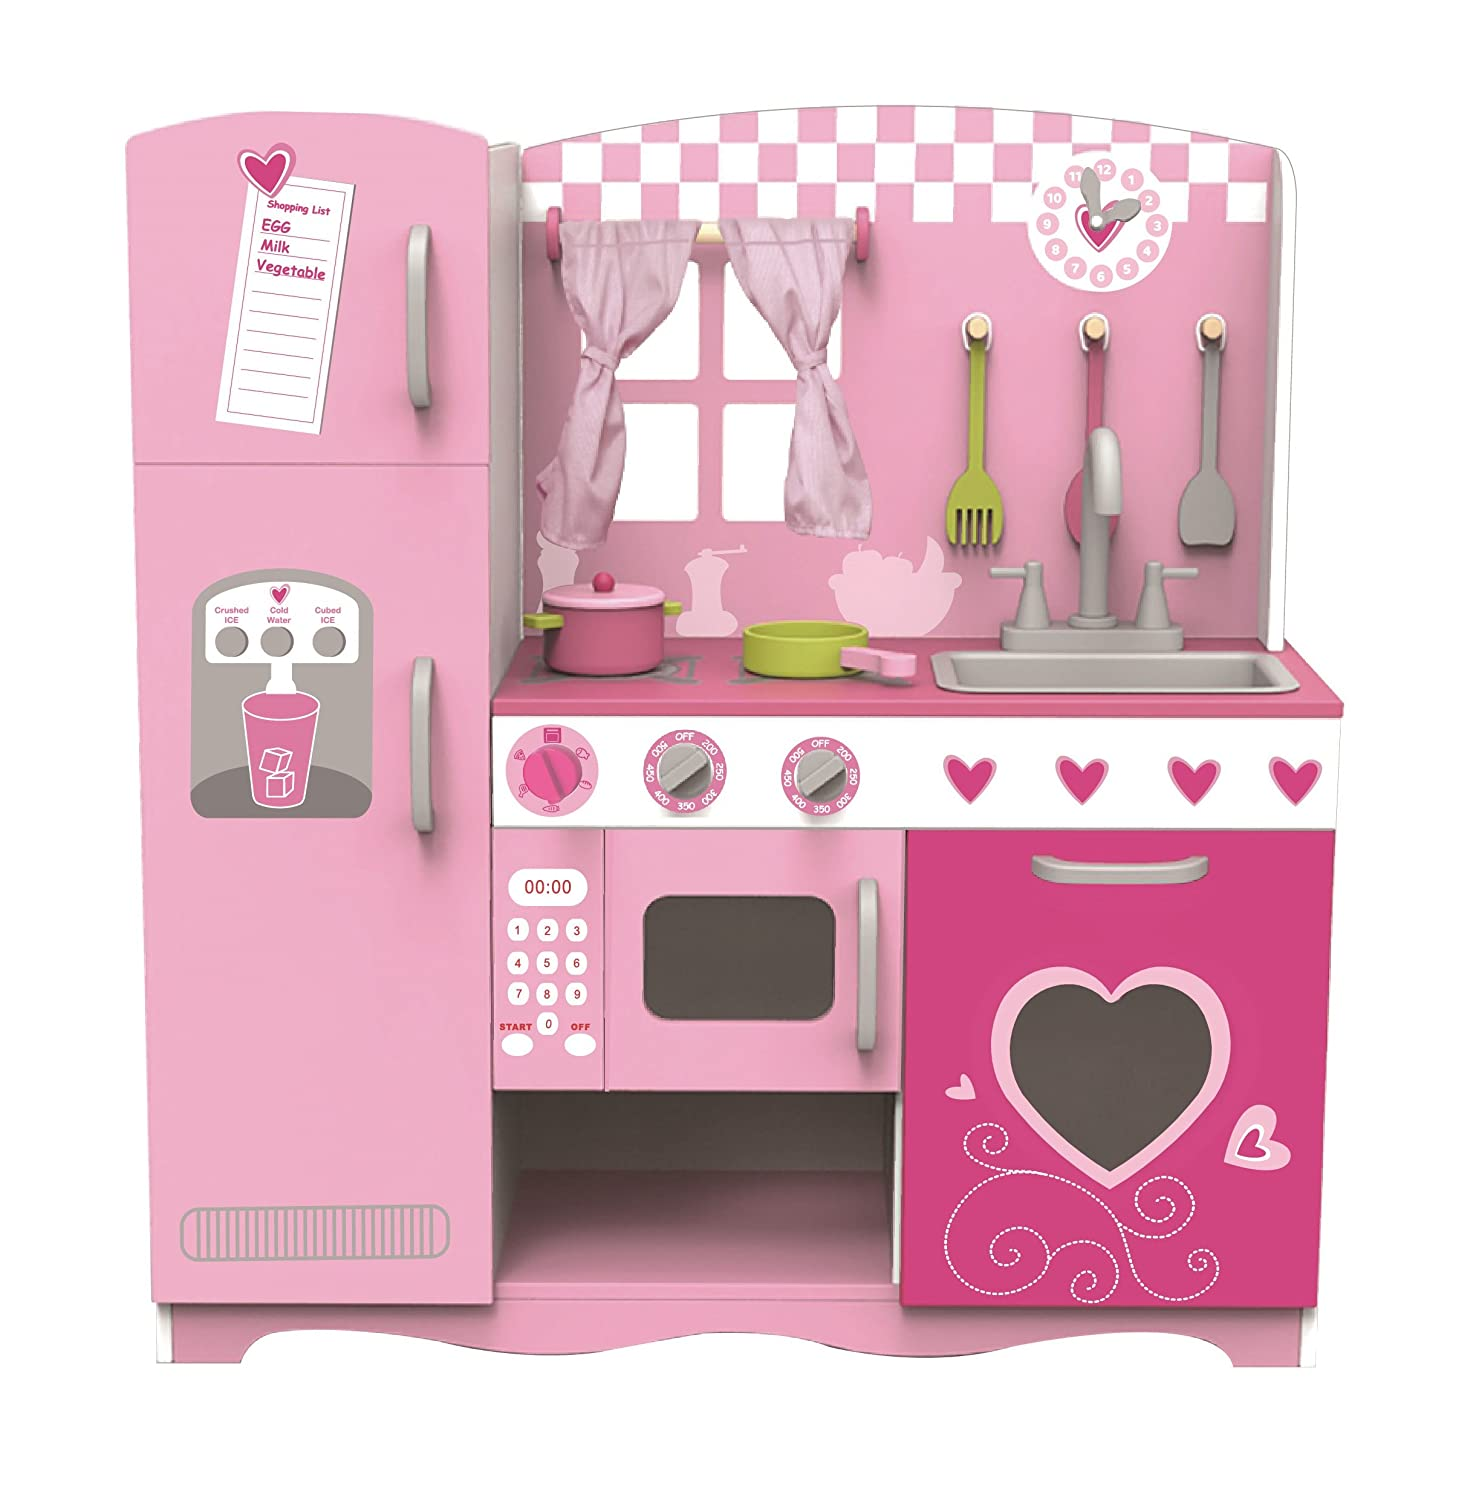 Buy classic world pink kitchen set online at low prices in india amazon in